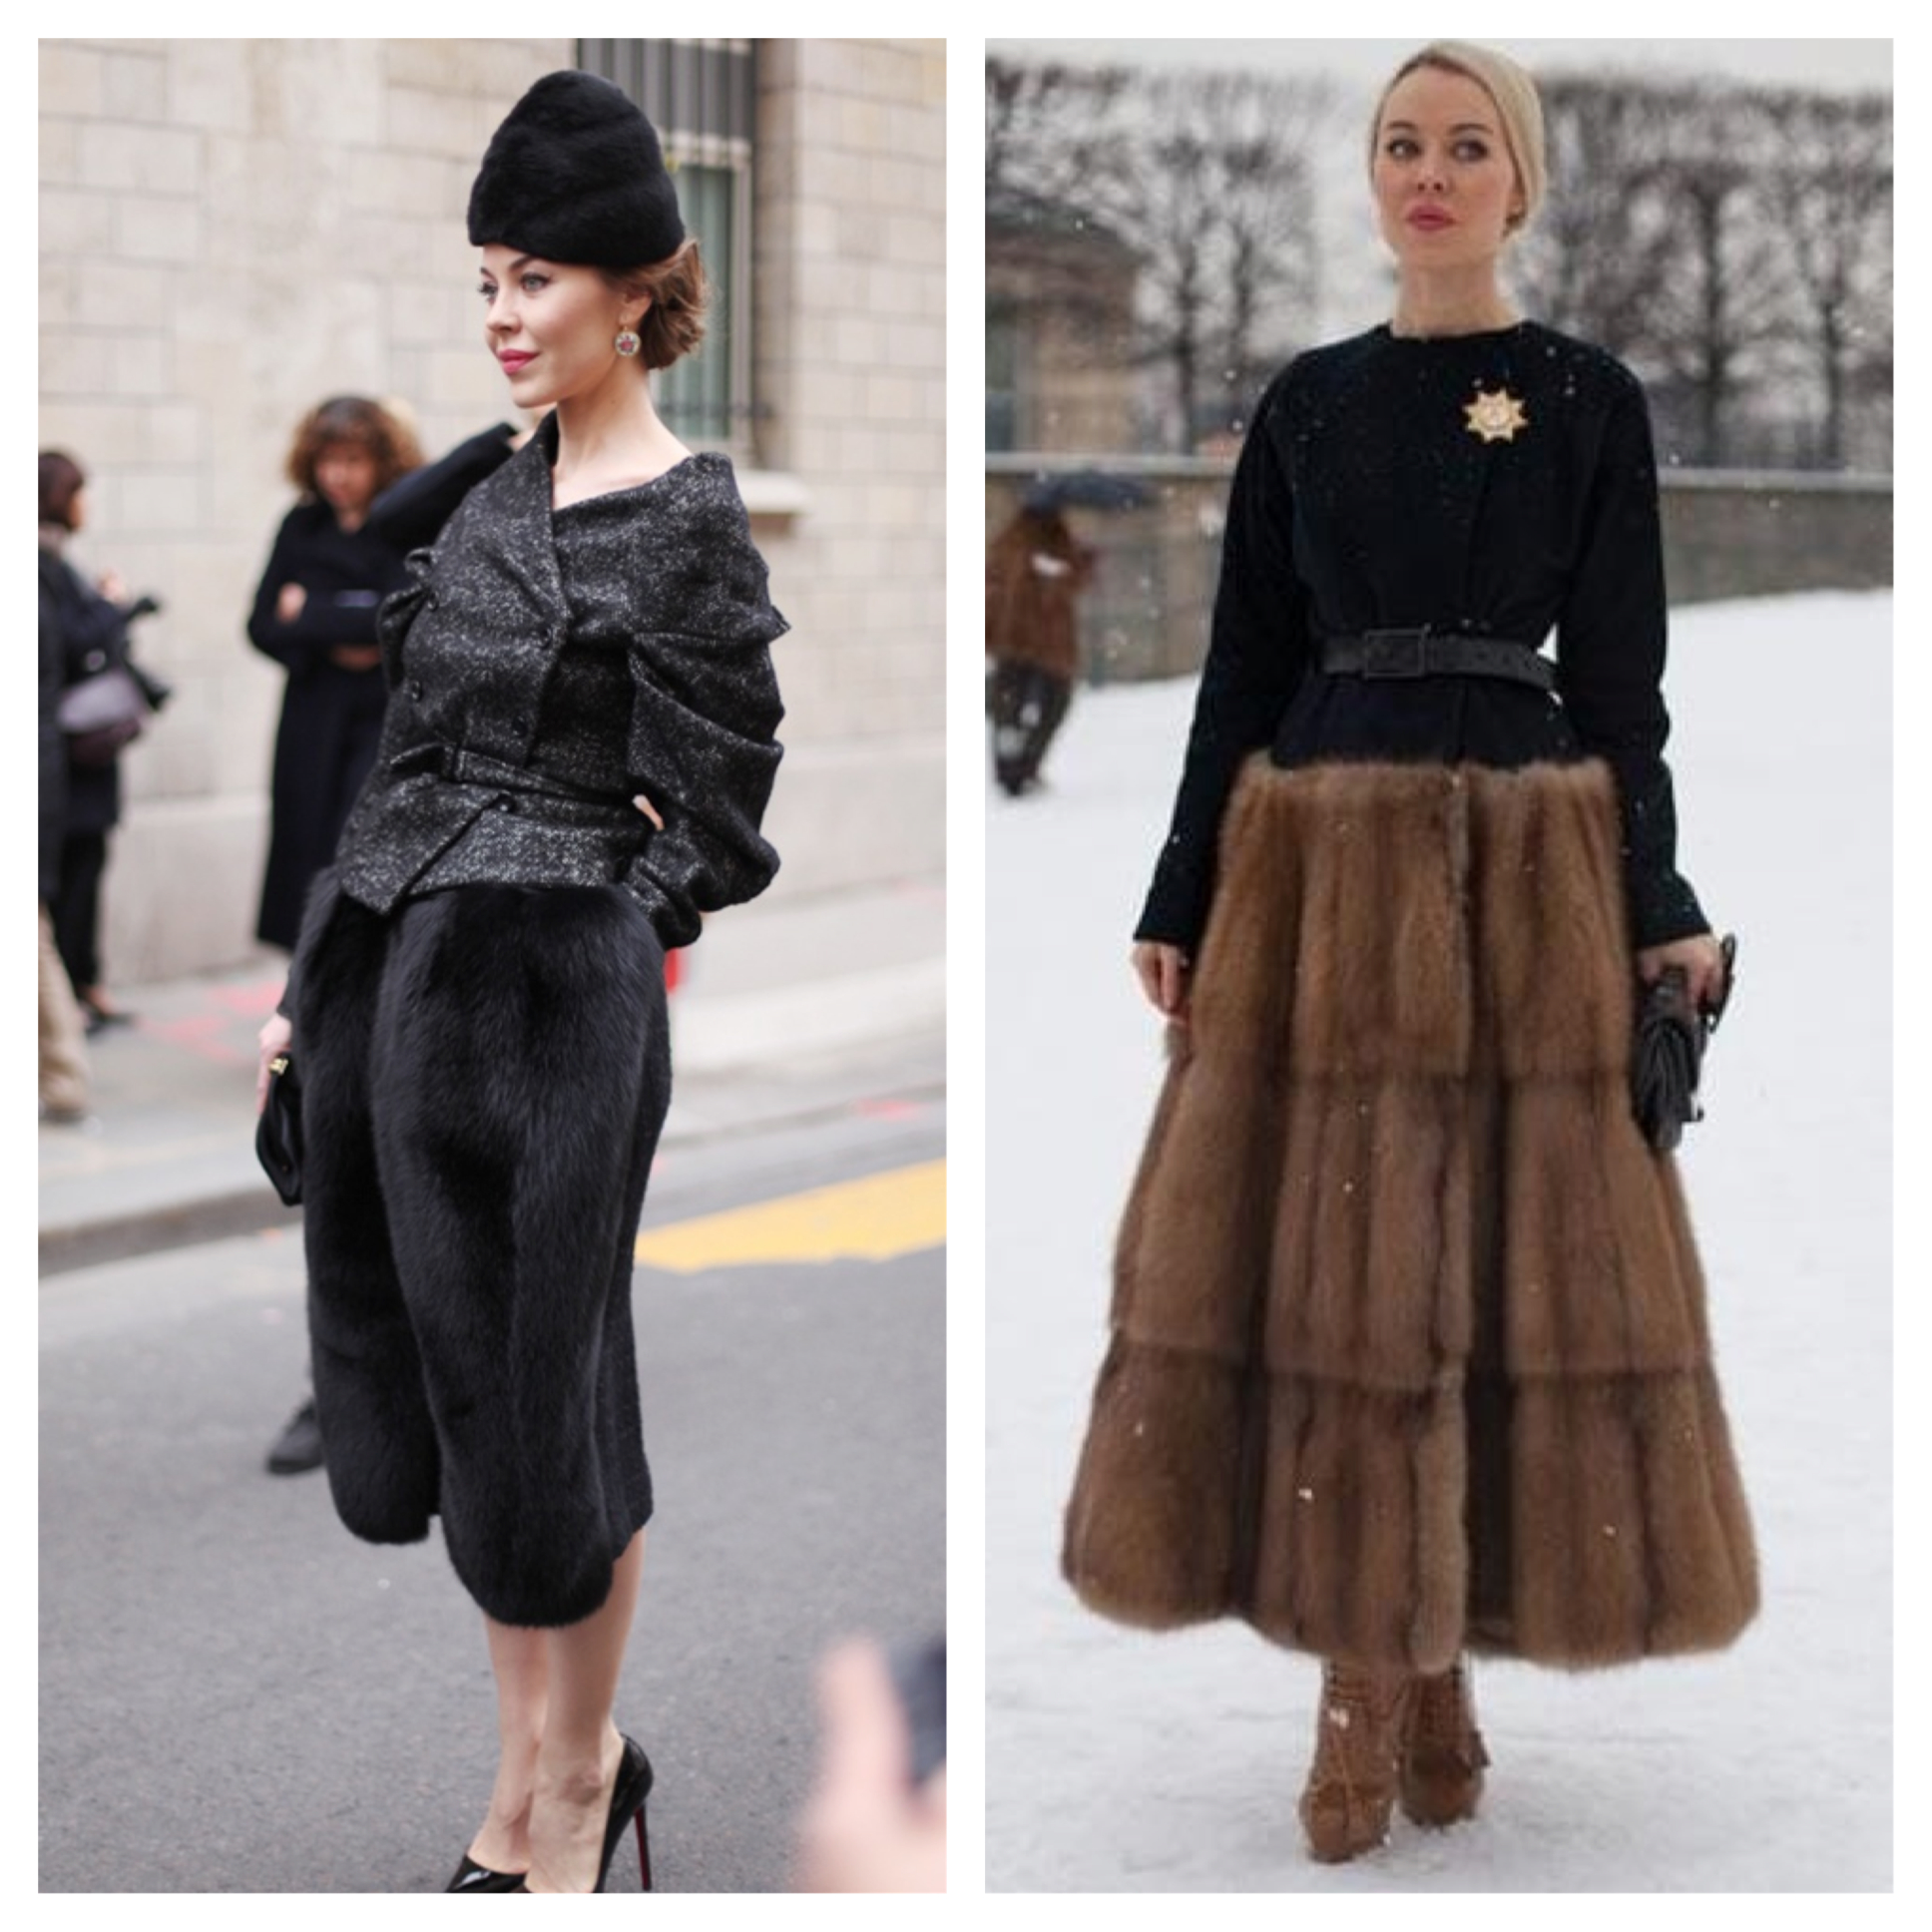 Two Fashion Week fur skirt looks, from earlier this year, that were so powerfully polished that it stopped us in our tracks!